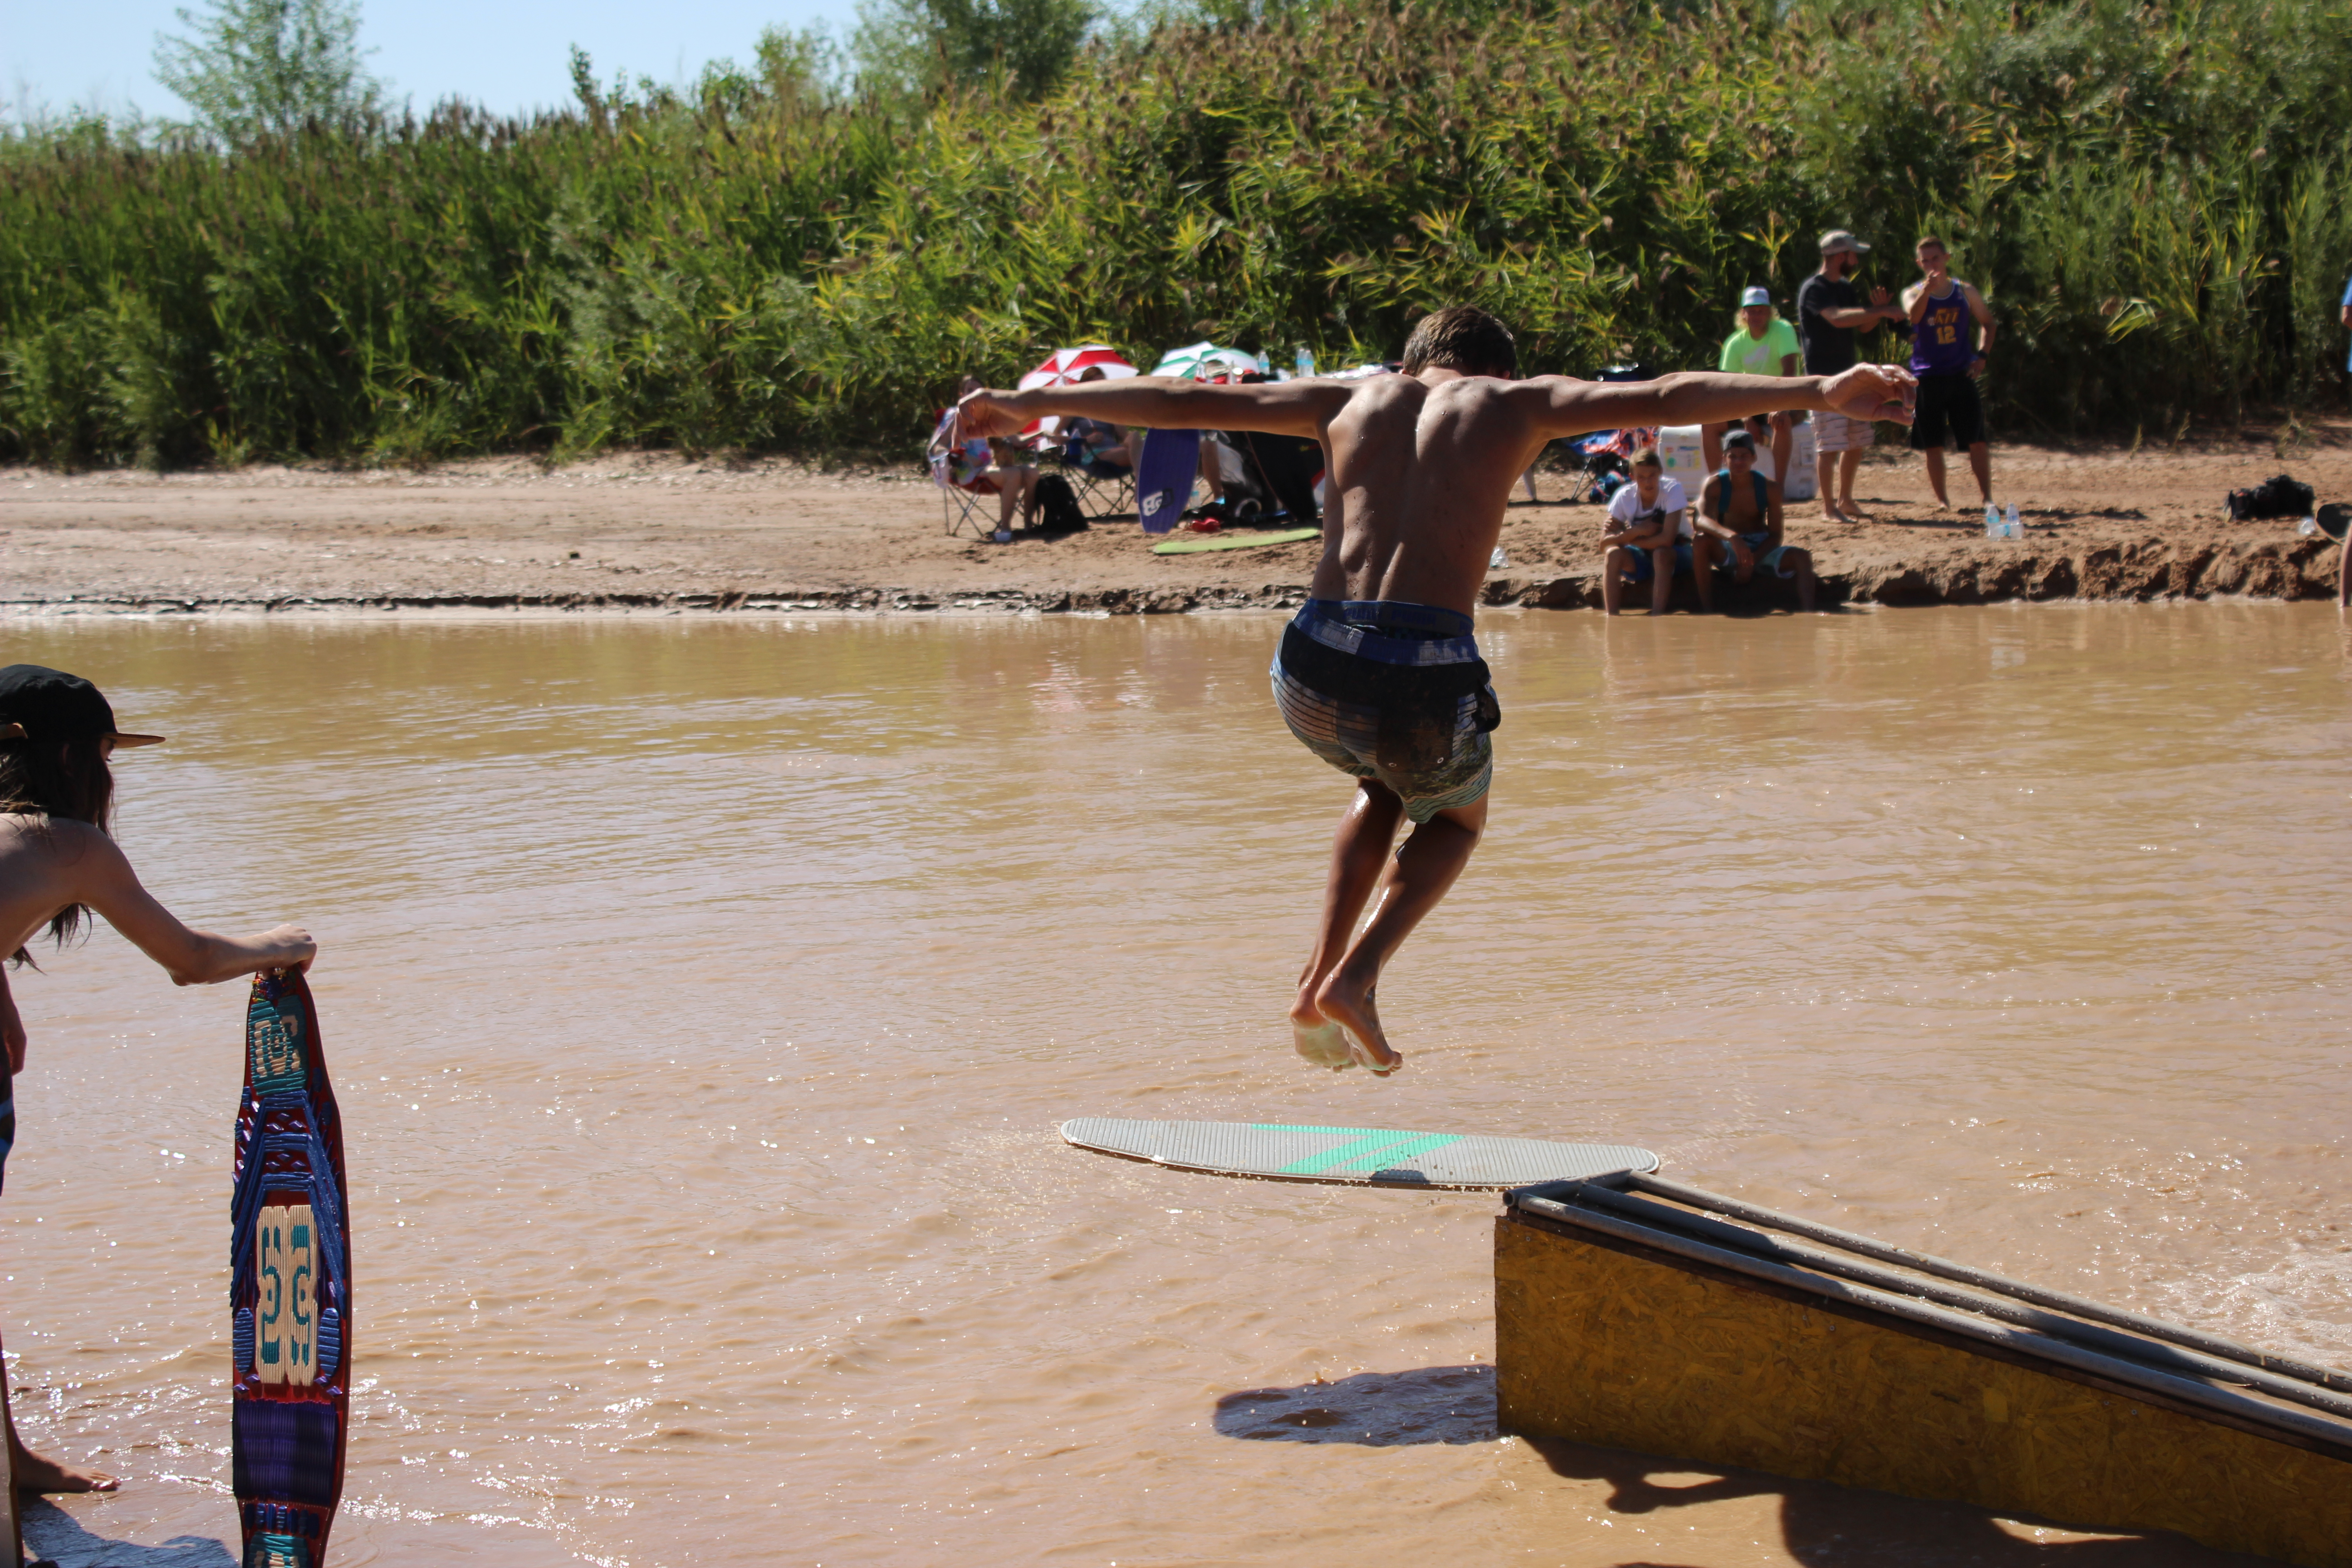 A competitor in the 1st Annual Skimapalooza skimboarding competition gets airborn while attempting a trick, St. George, Utah, Aug. 13, 2016 | Photo by Don Gilman, St. George News